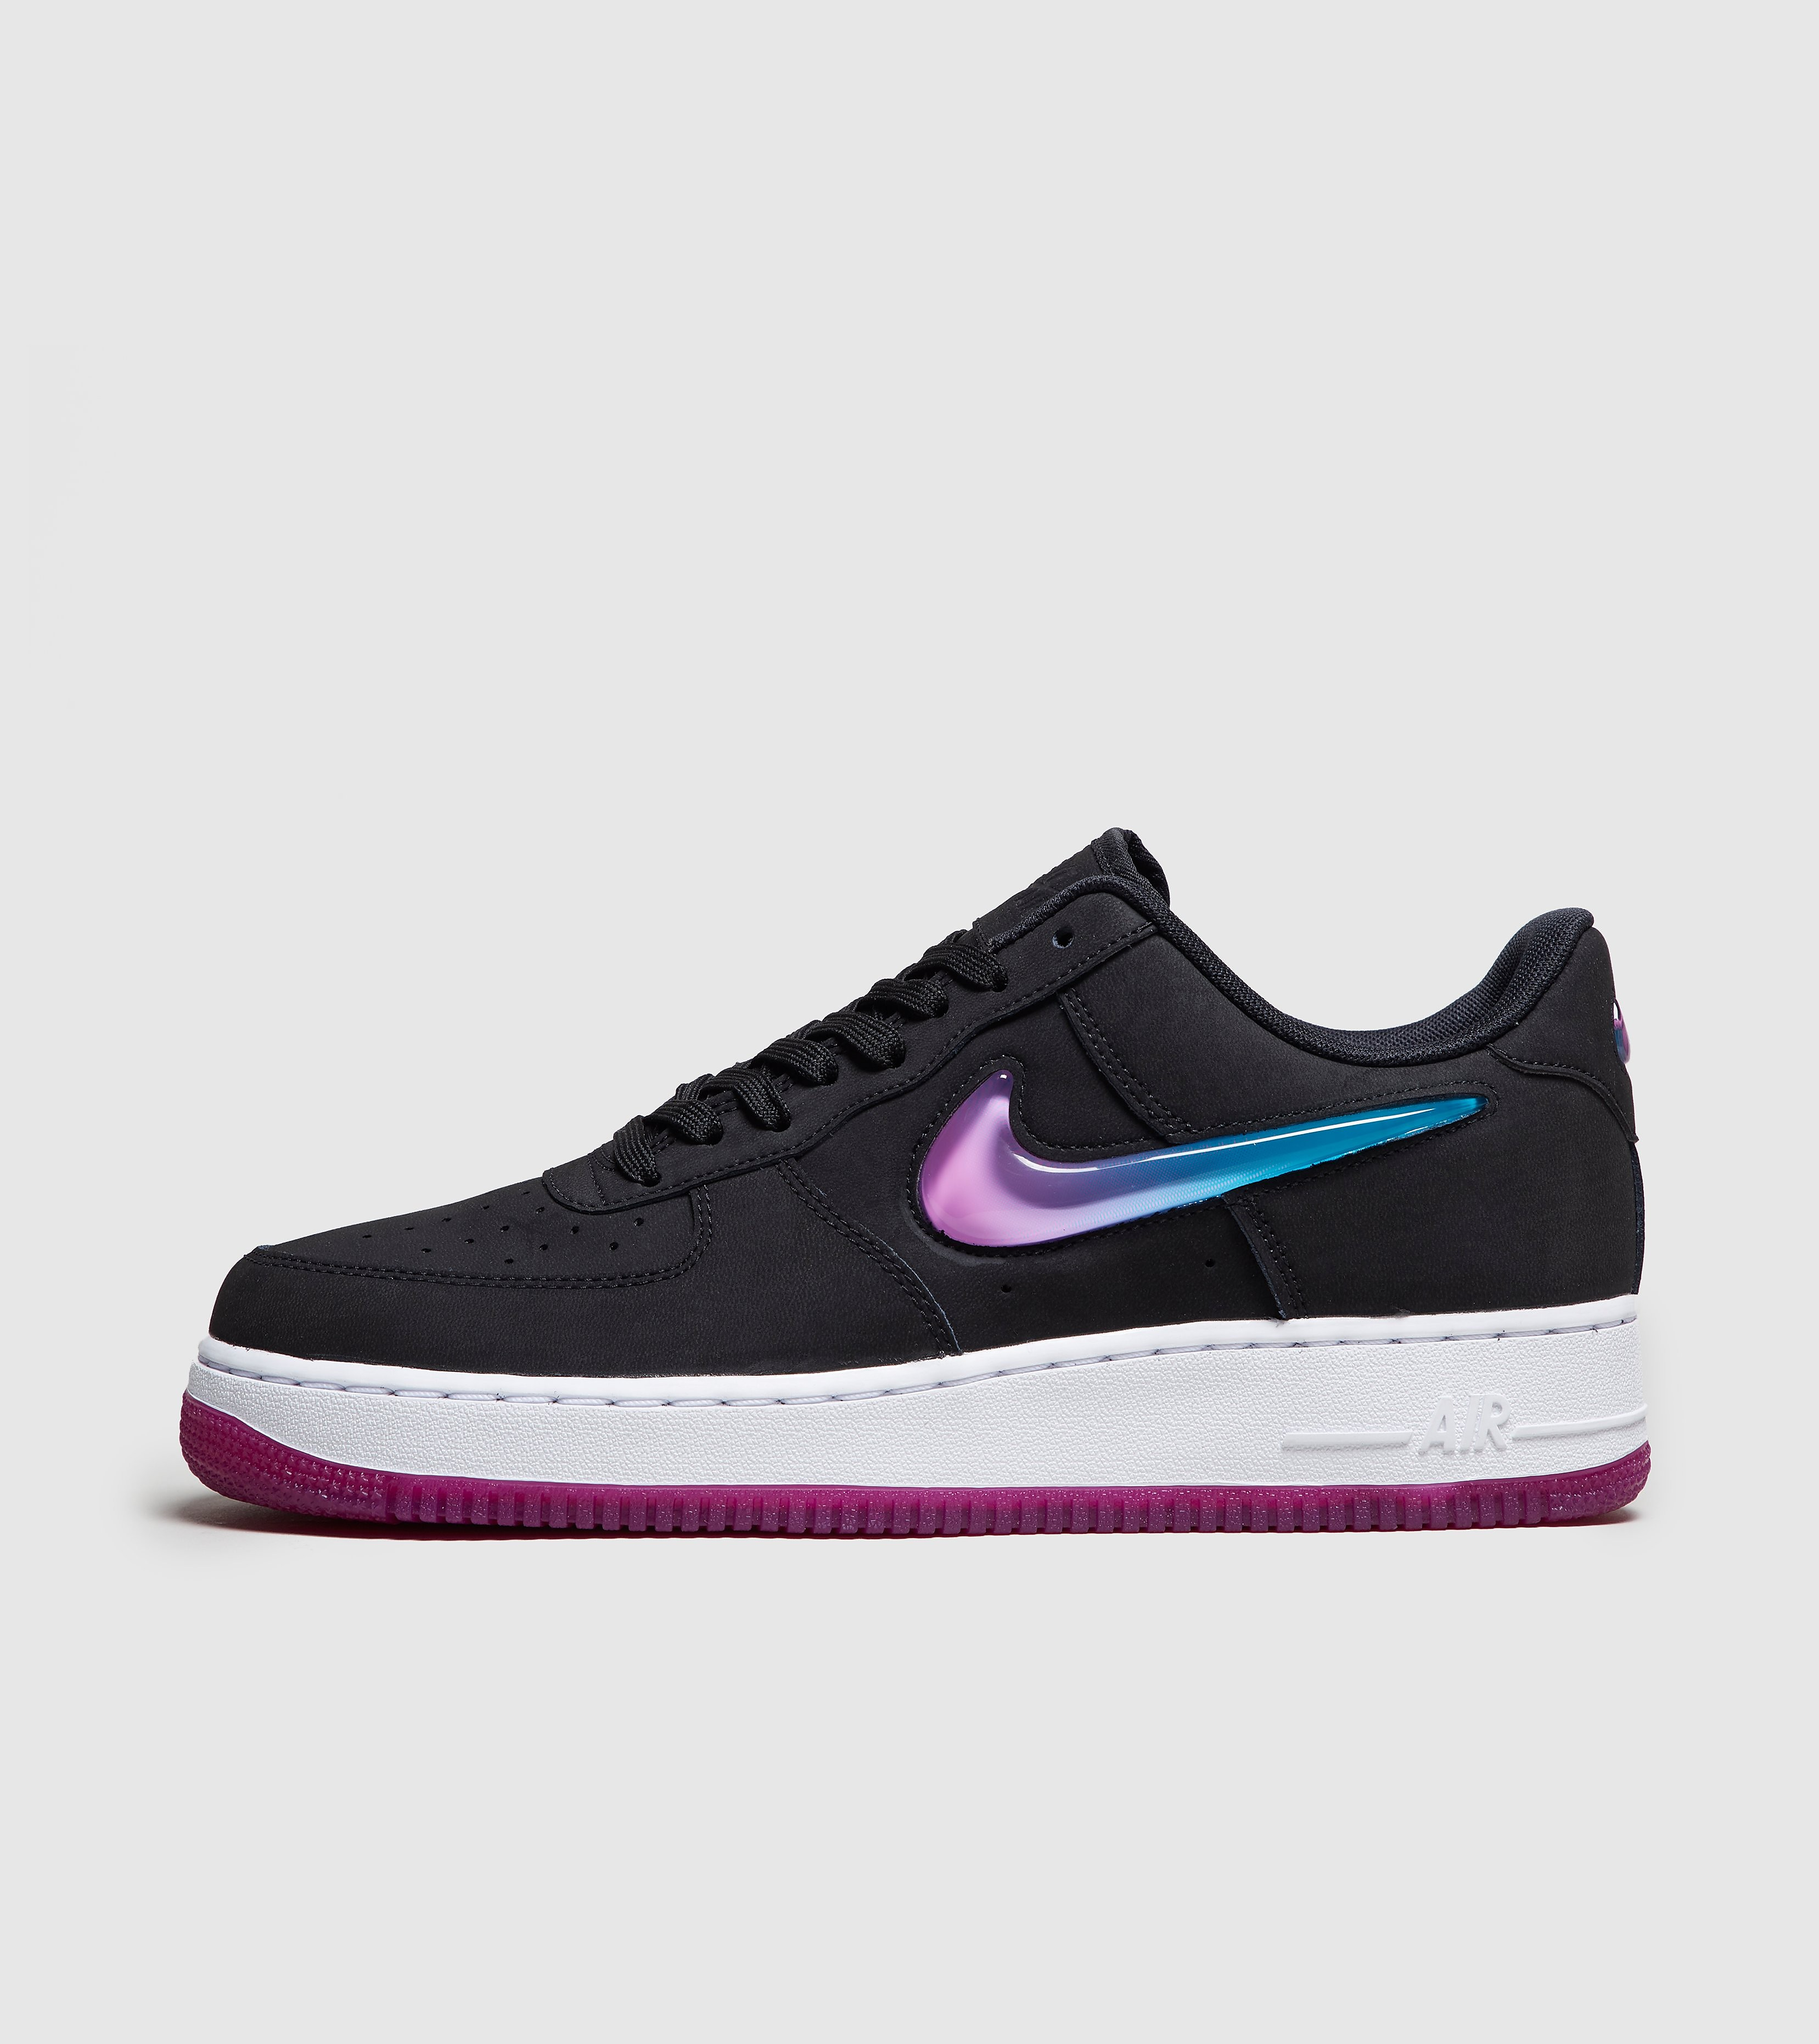 cheap for discount cbf21 a457e Trainers - Discover designer Trainers at London Trend